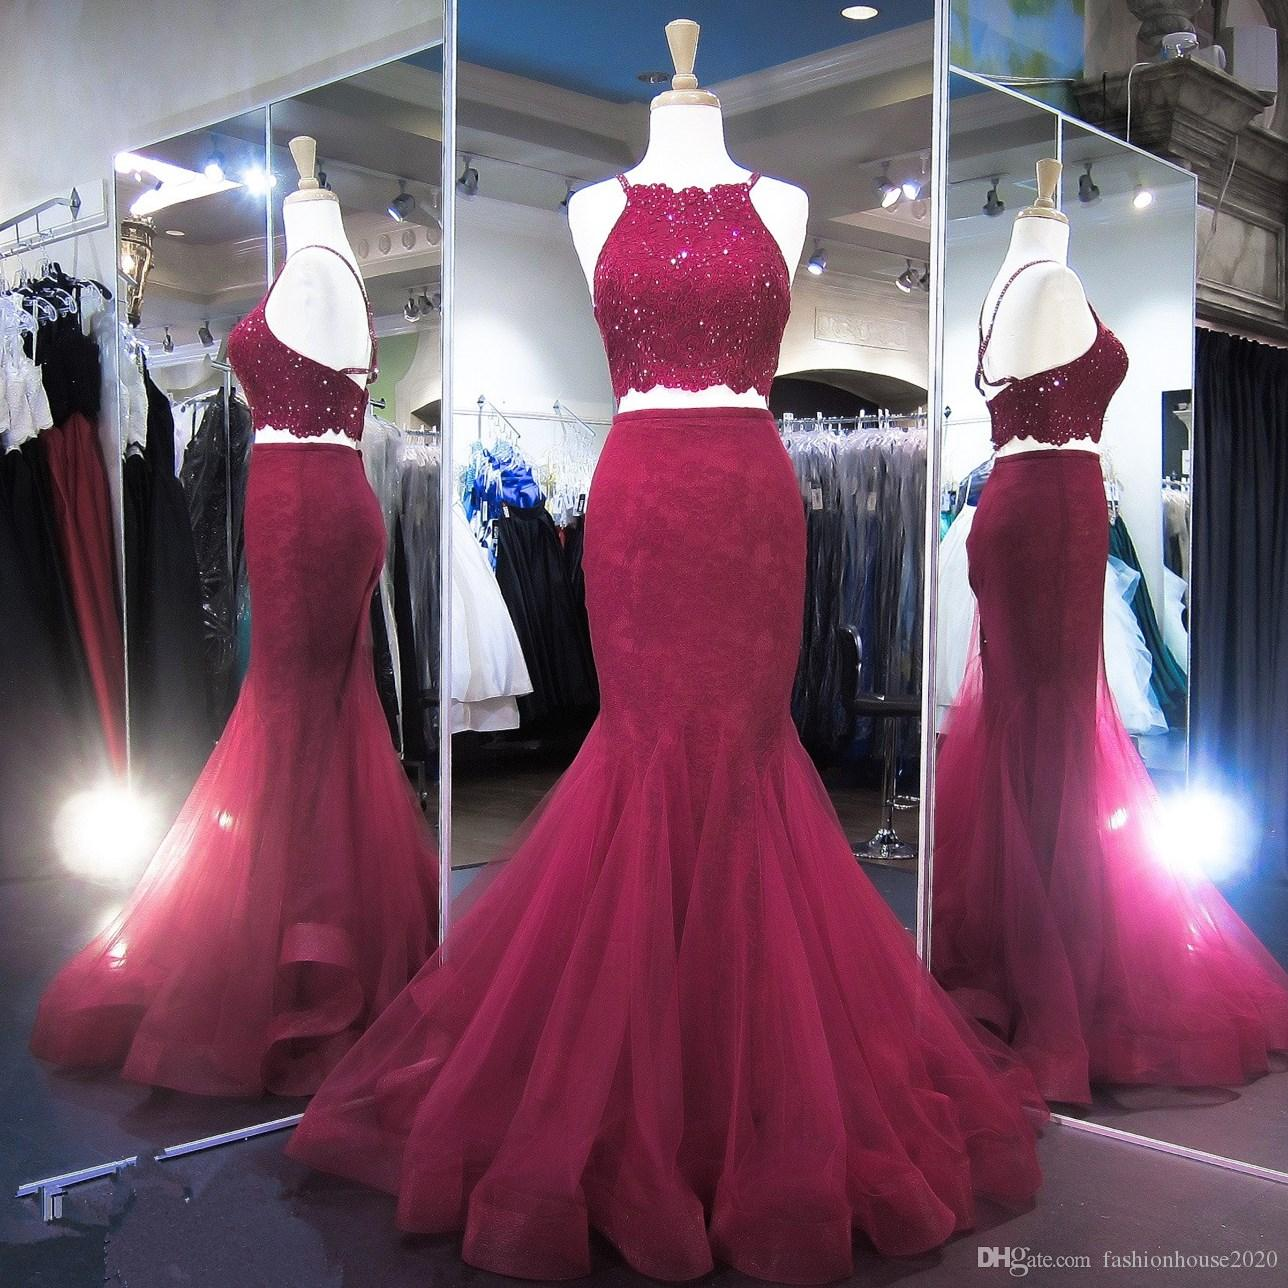 a27531c1afd Burgundy Lace Two Pieces Prom Dresses Long Halter Neck Appliques African  Mermaid Prom 2K17 Cheap Formal Party Gowns Satin Prom Dresses Sexy Long Prom  ...